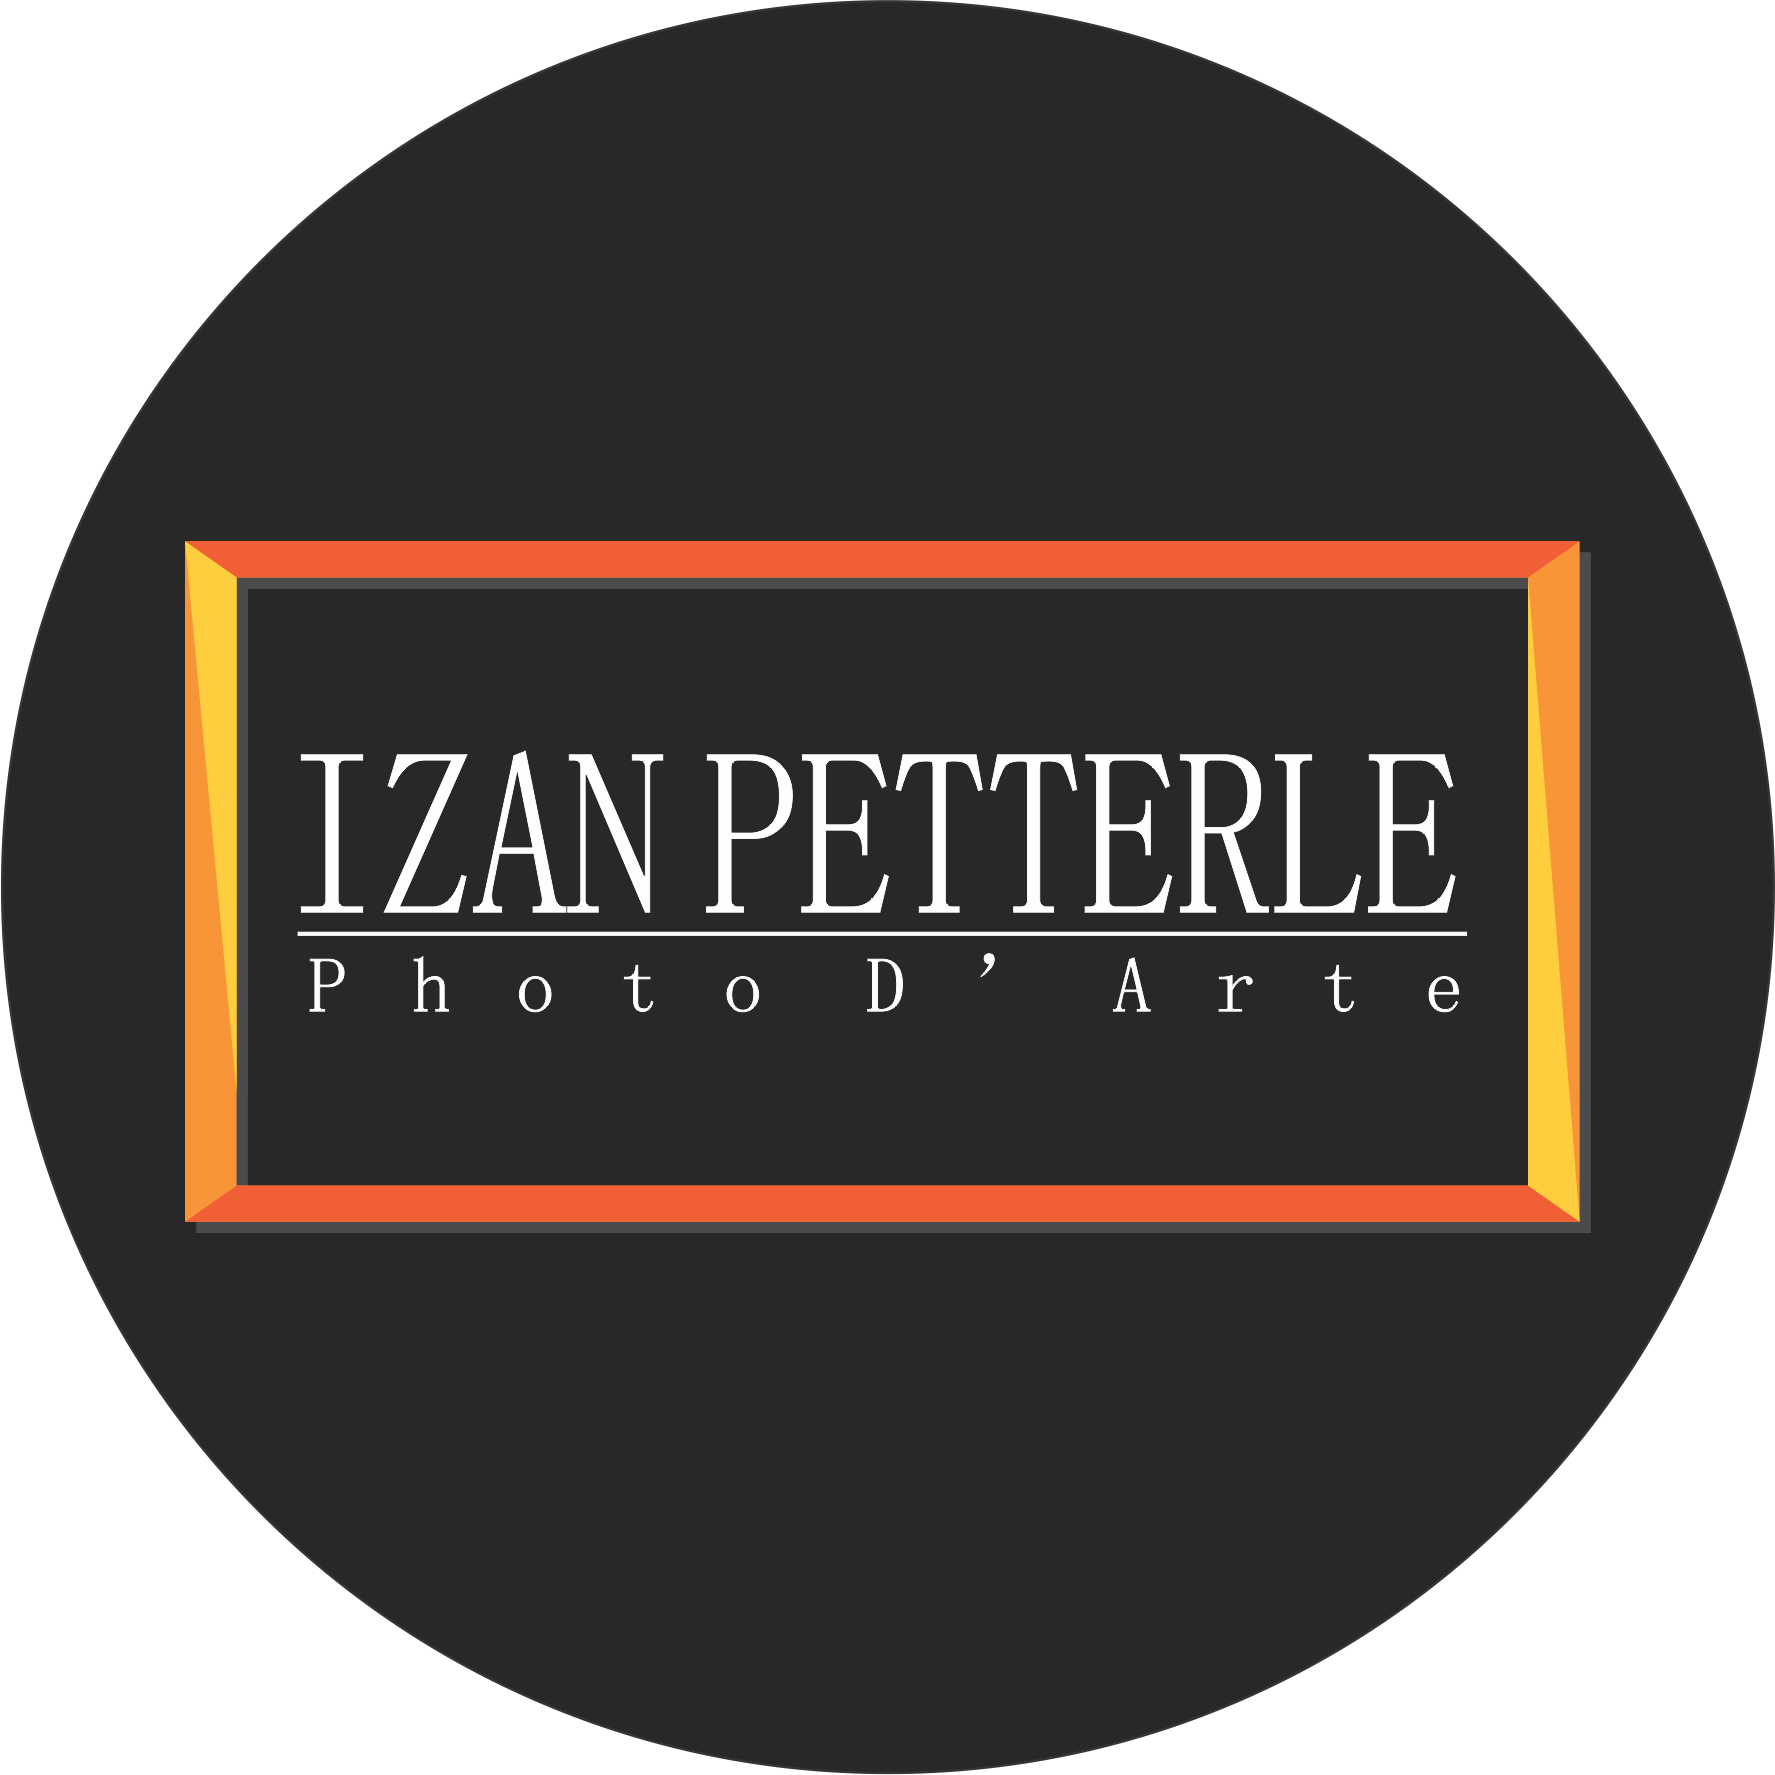 IZAN PETTERLE/PHOTO D'ARTE